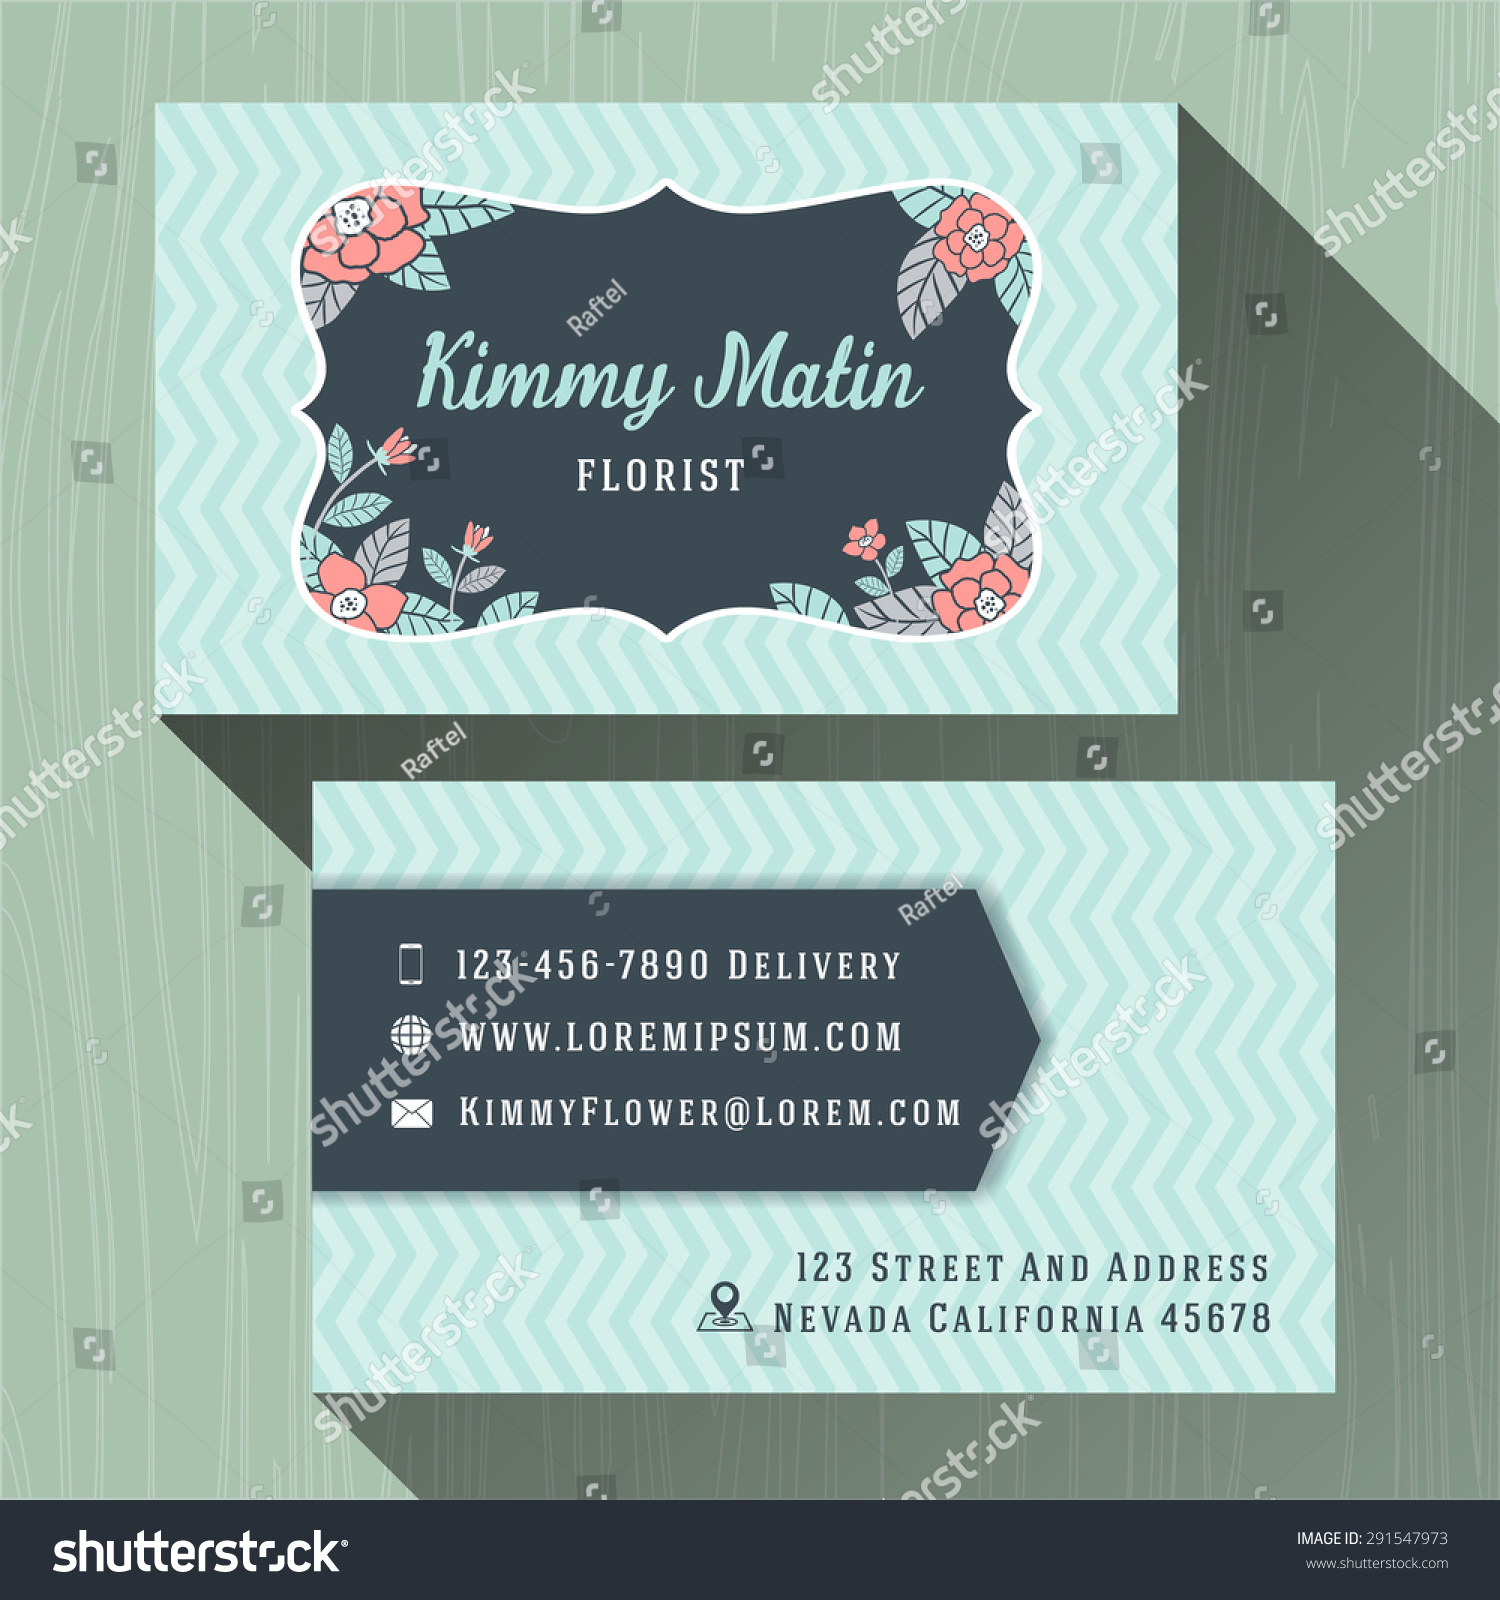 Flower Shop Business Name Cards Template Stock Vector 291547973 ...